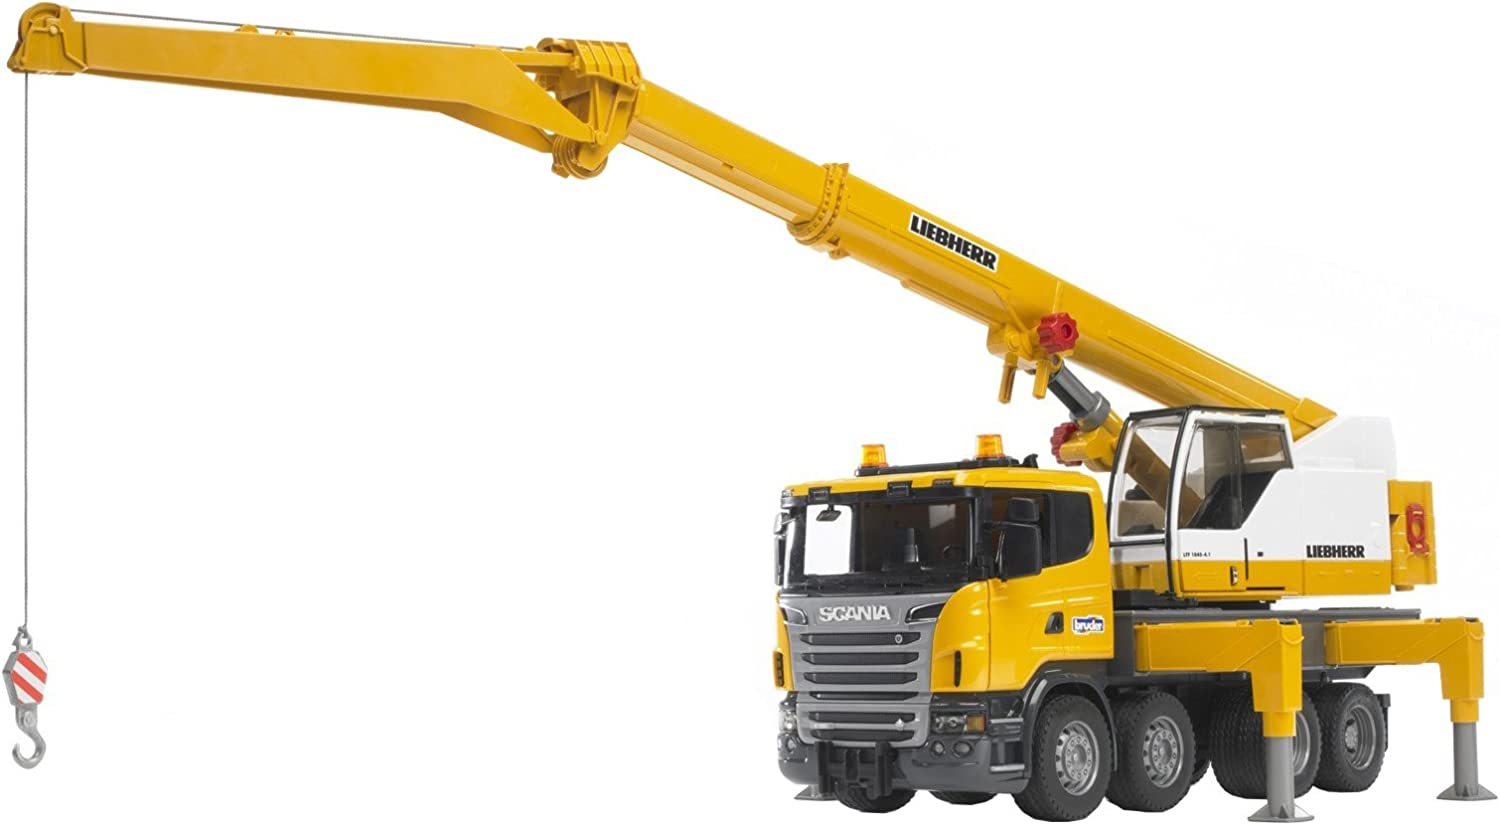 Top 9 Best Remote Control Cranes Toys (2020 Reviews & Buying Guide) 2